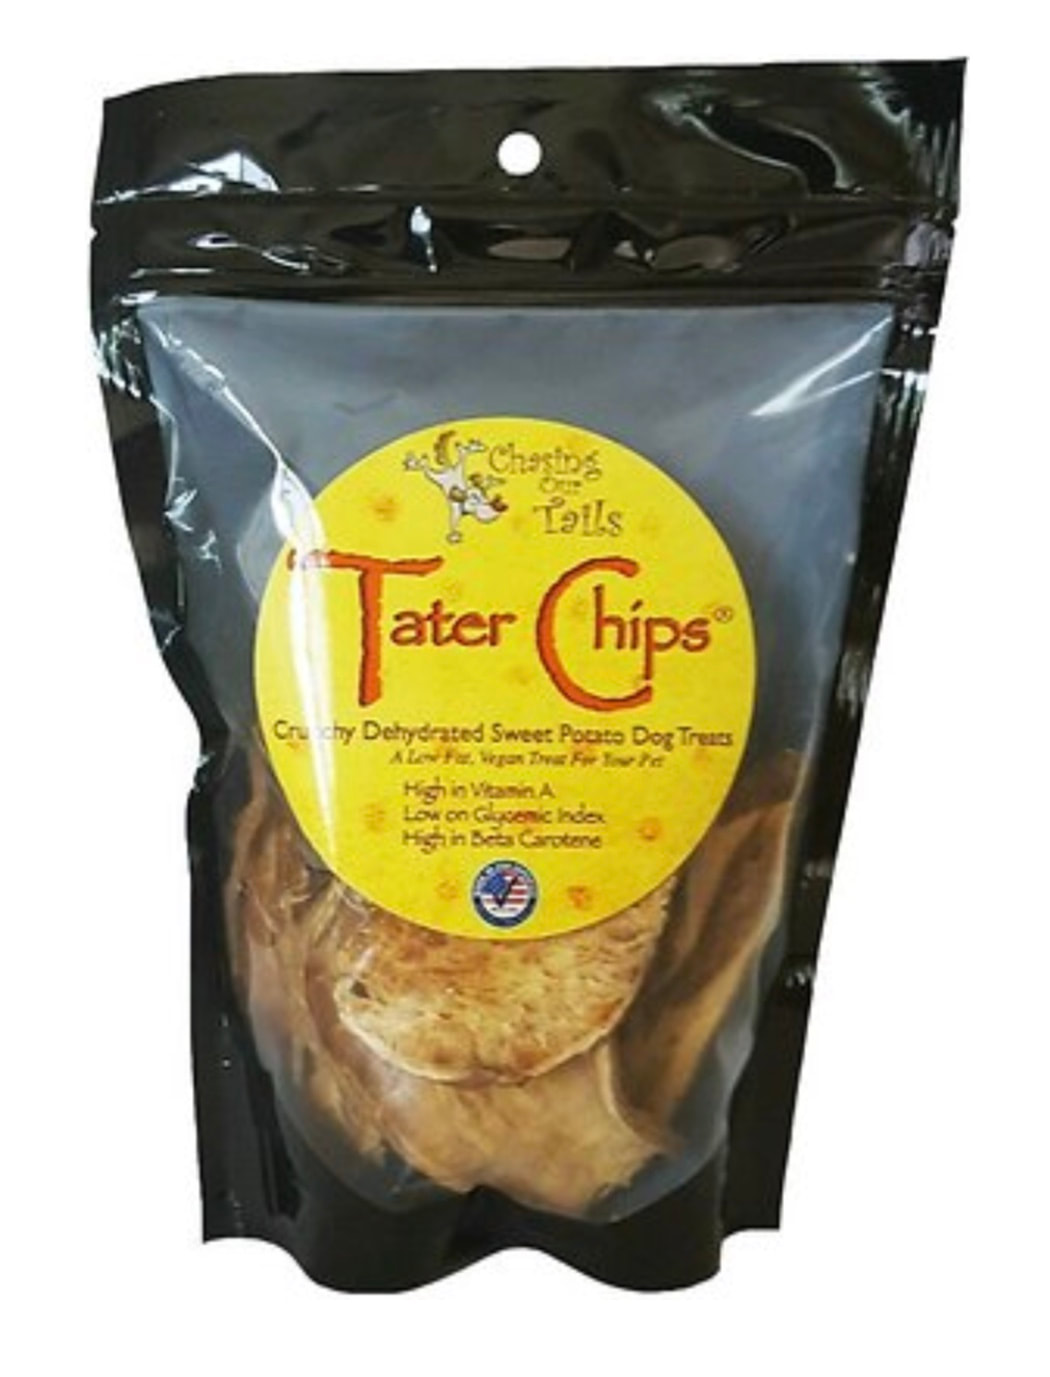 Tater Chips- Crunchy Dehydrated Sweet Potato All Natural